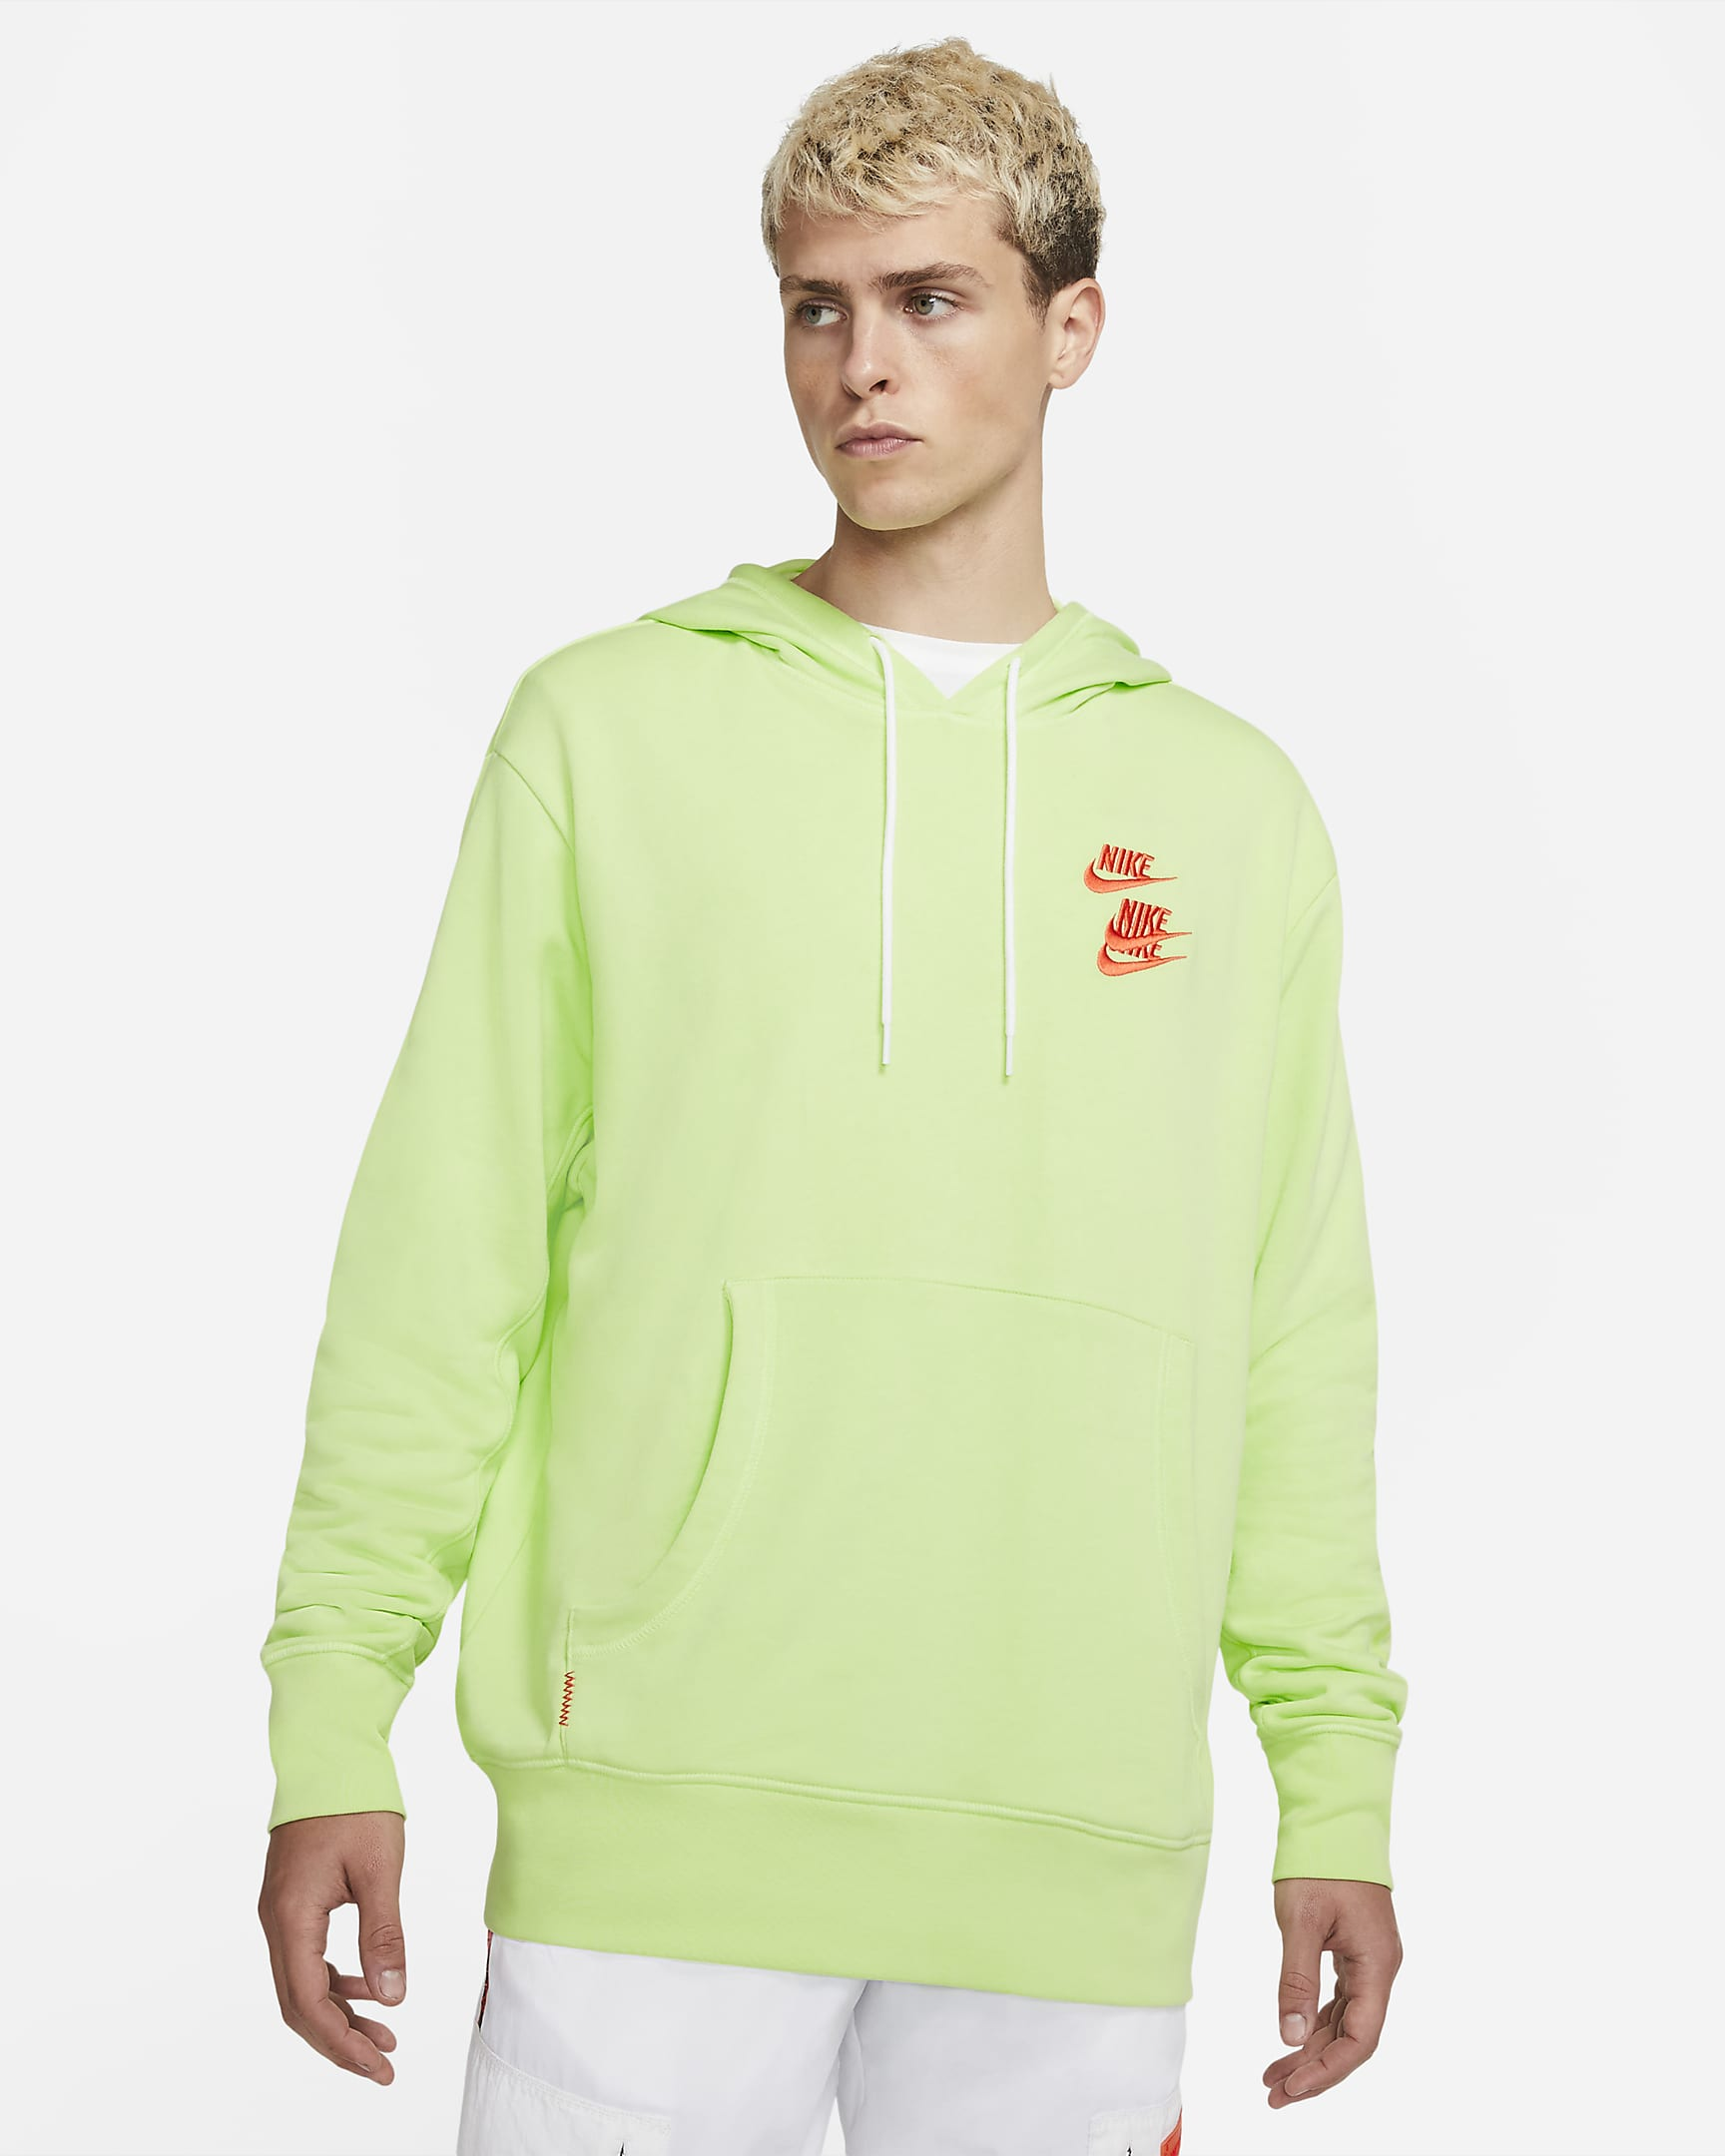 sportswear-pullover-french-terry-mens-hoodie-Sznwfc-8